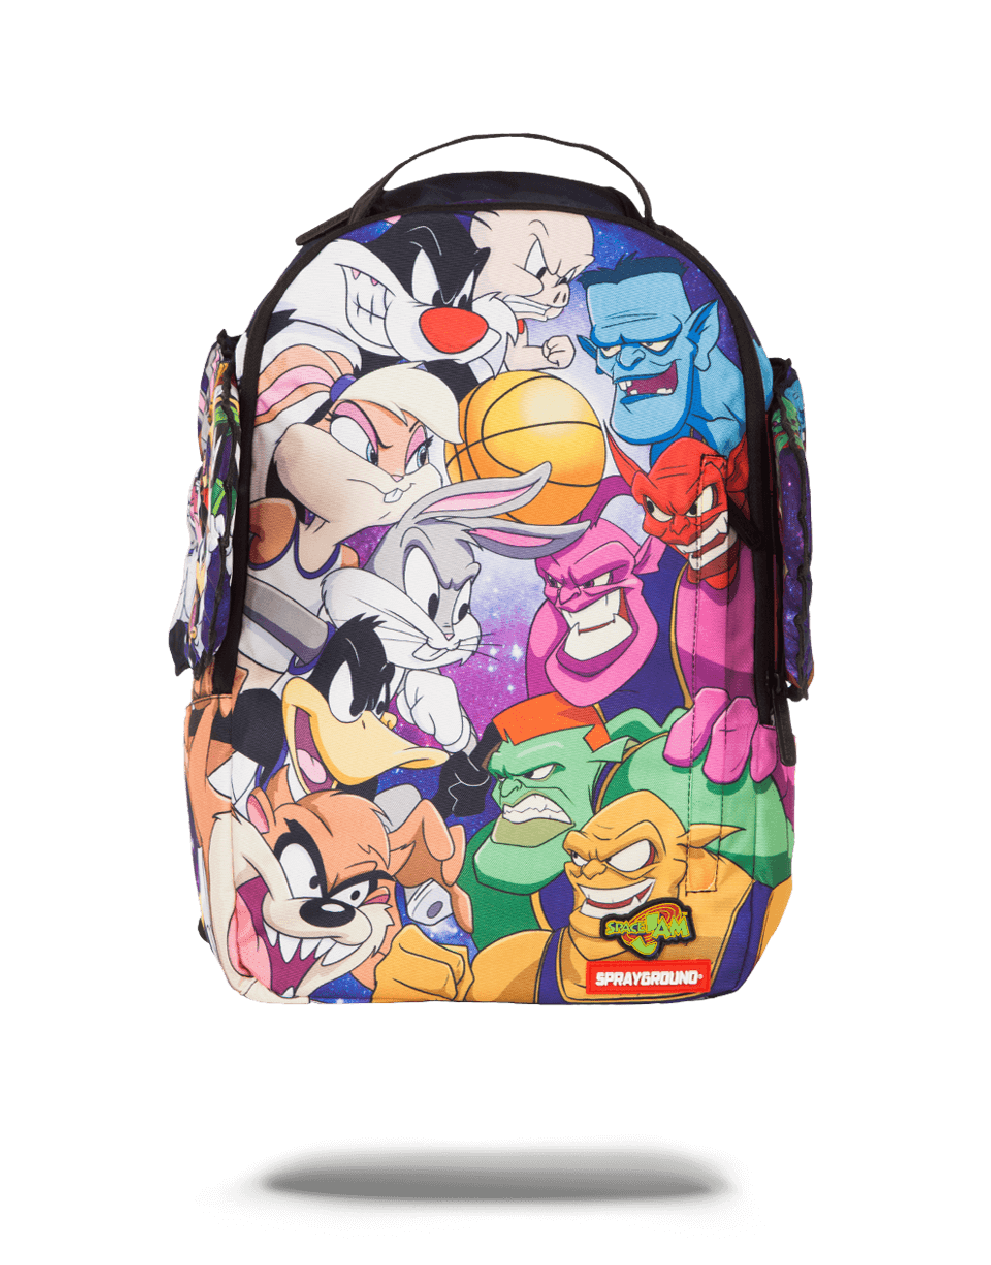 Space Jam Tunes vs. Monstars Bookbag on www.